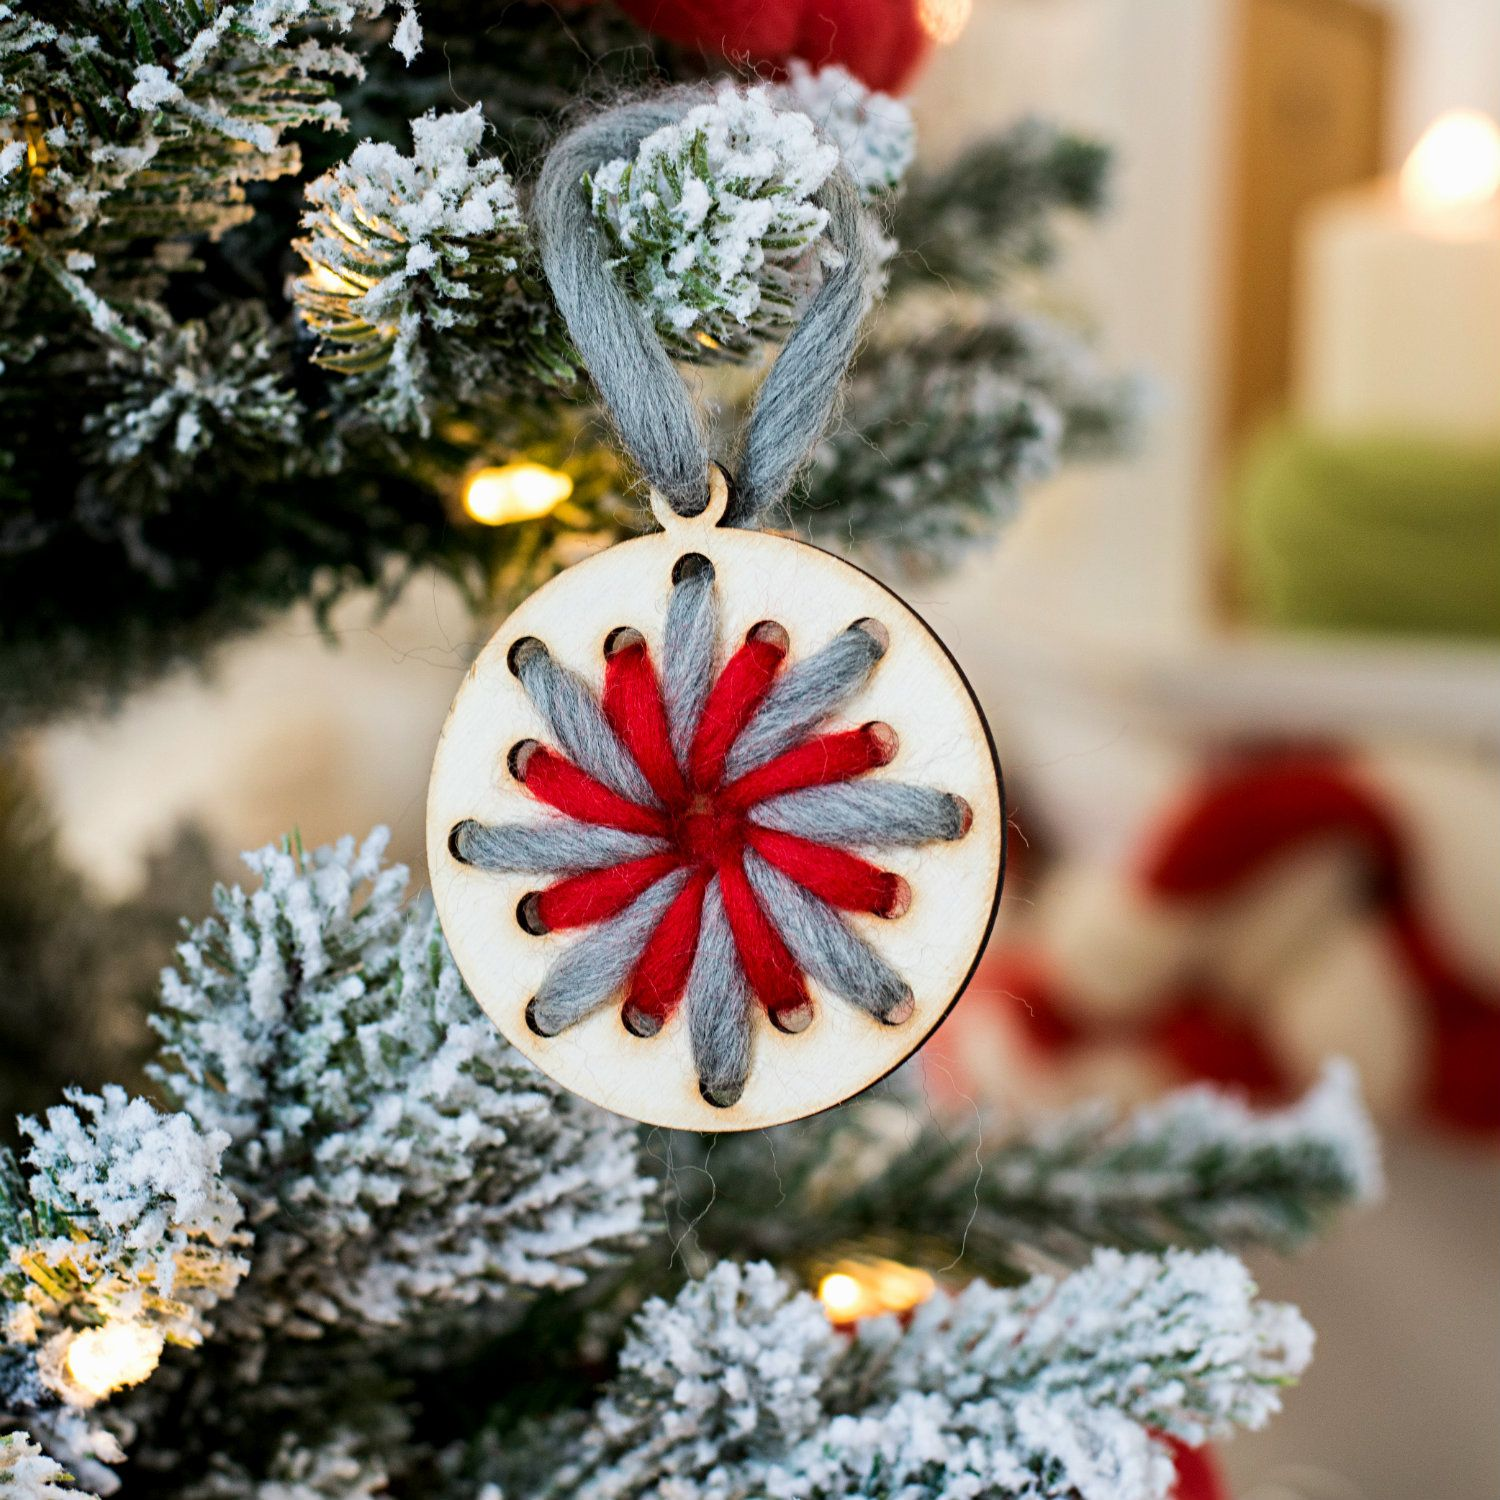 Handcrafted Christmas Tree Decorations With Wood And Wool Https Www Woolcouturecompany Com Product Ca Snowflake Ornaments Diy Wooden Snowflakes Weaving Kit